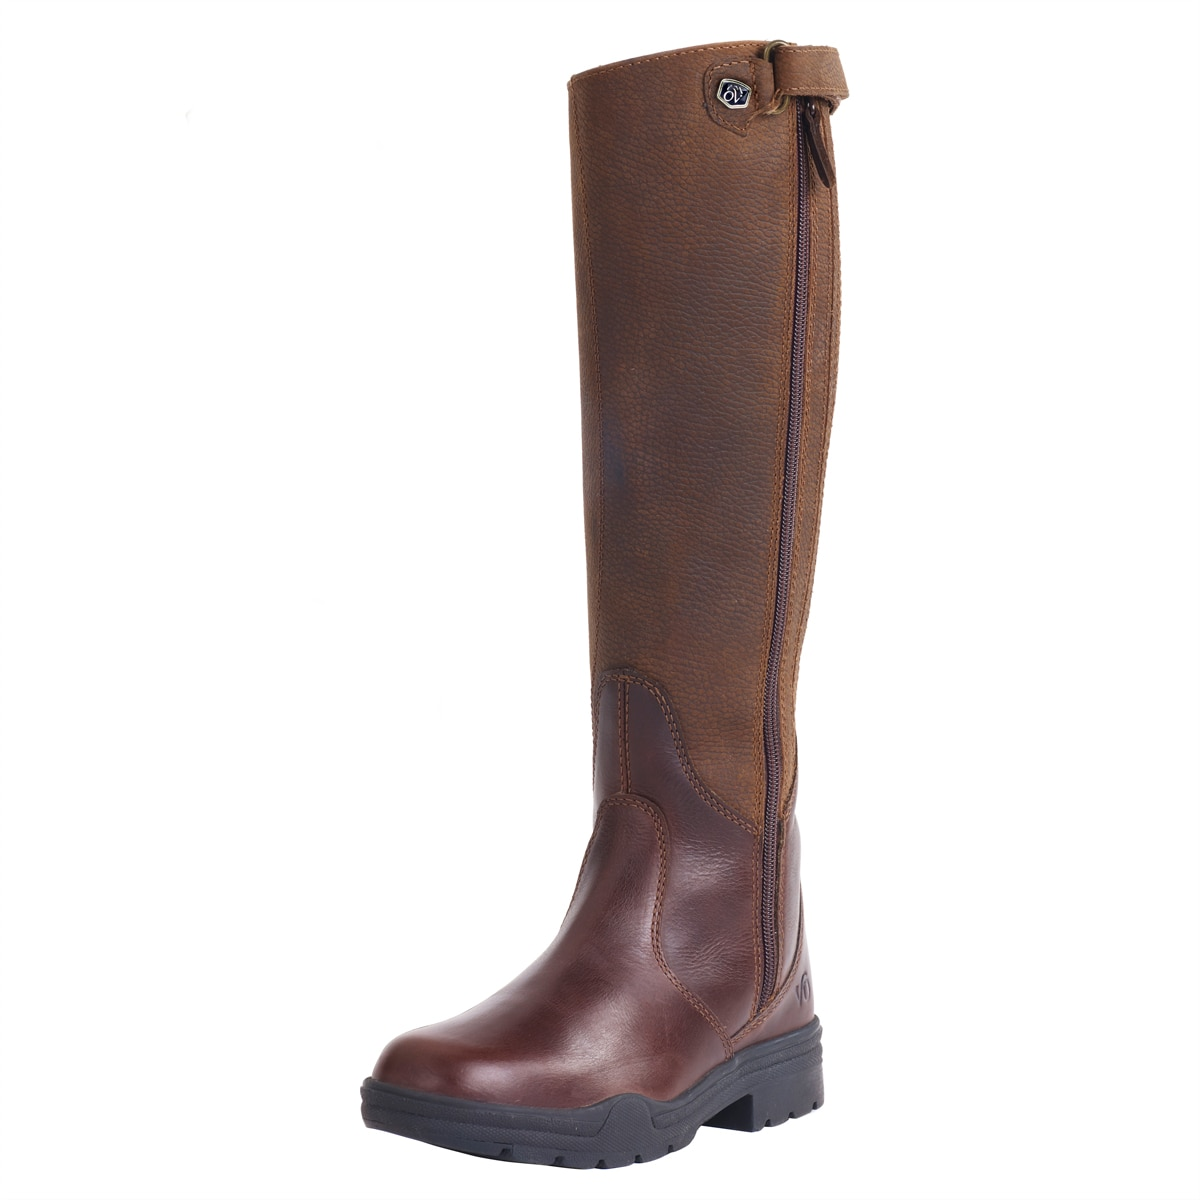 Ovation Mens Moorland II Highrider Boot Equestrian Sport Boots Athletic